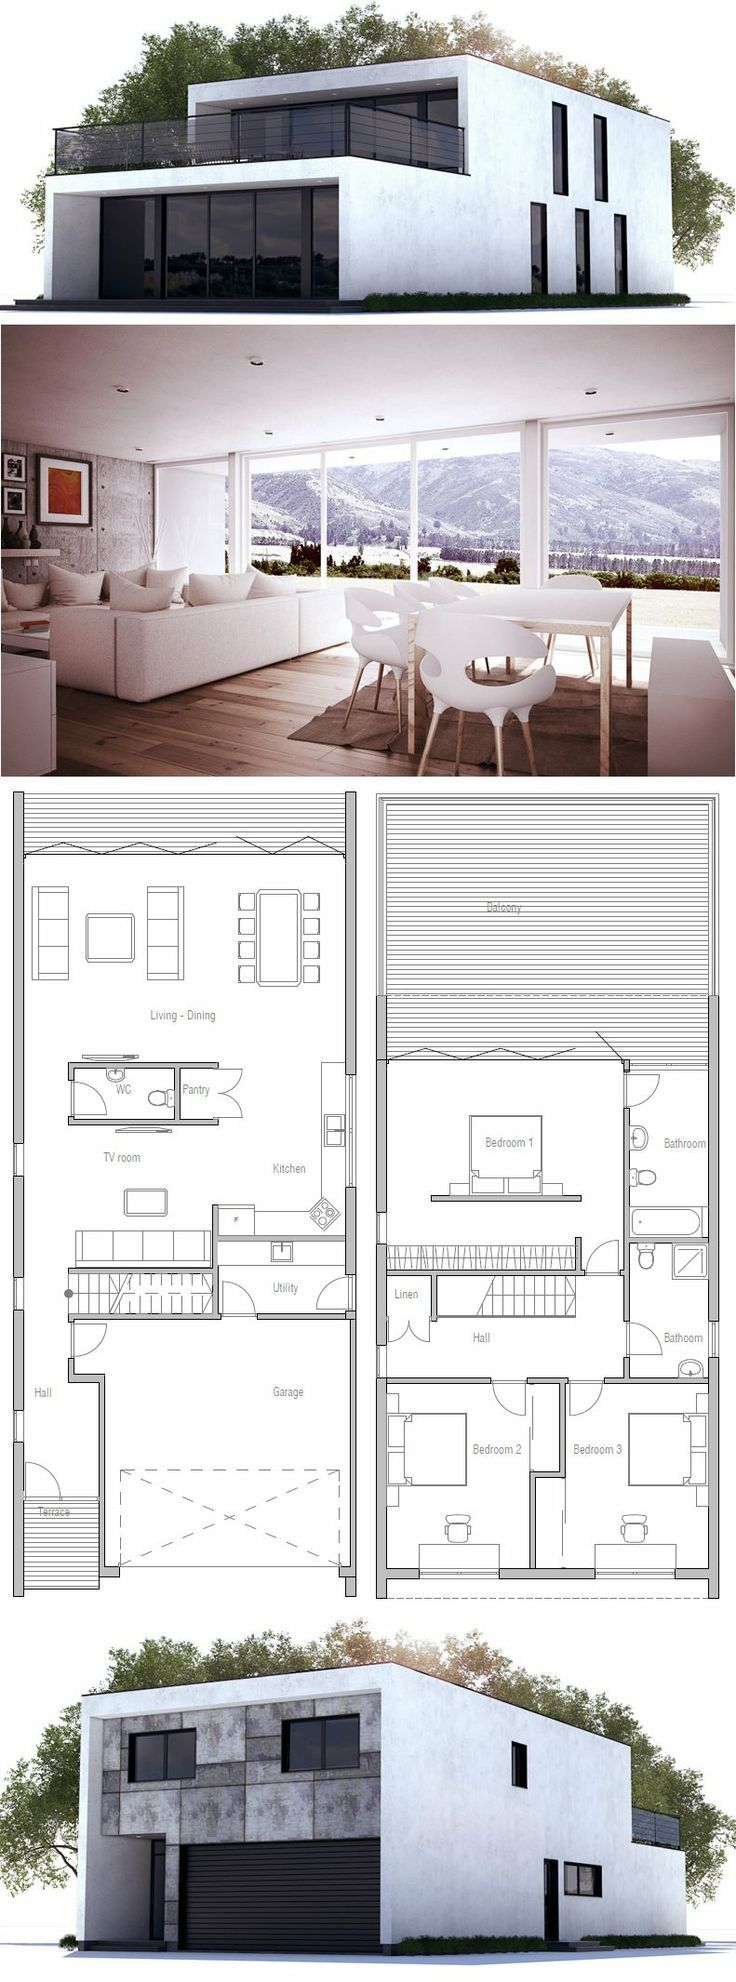 Modern Contemporary Home with three bedrooms and double garage. Floor Plan from ConceptHome.com: